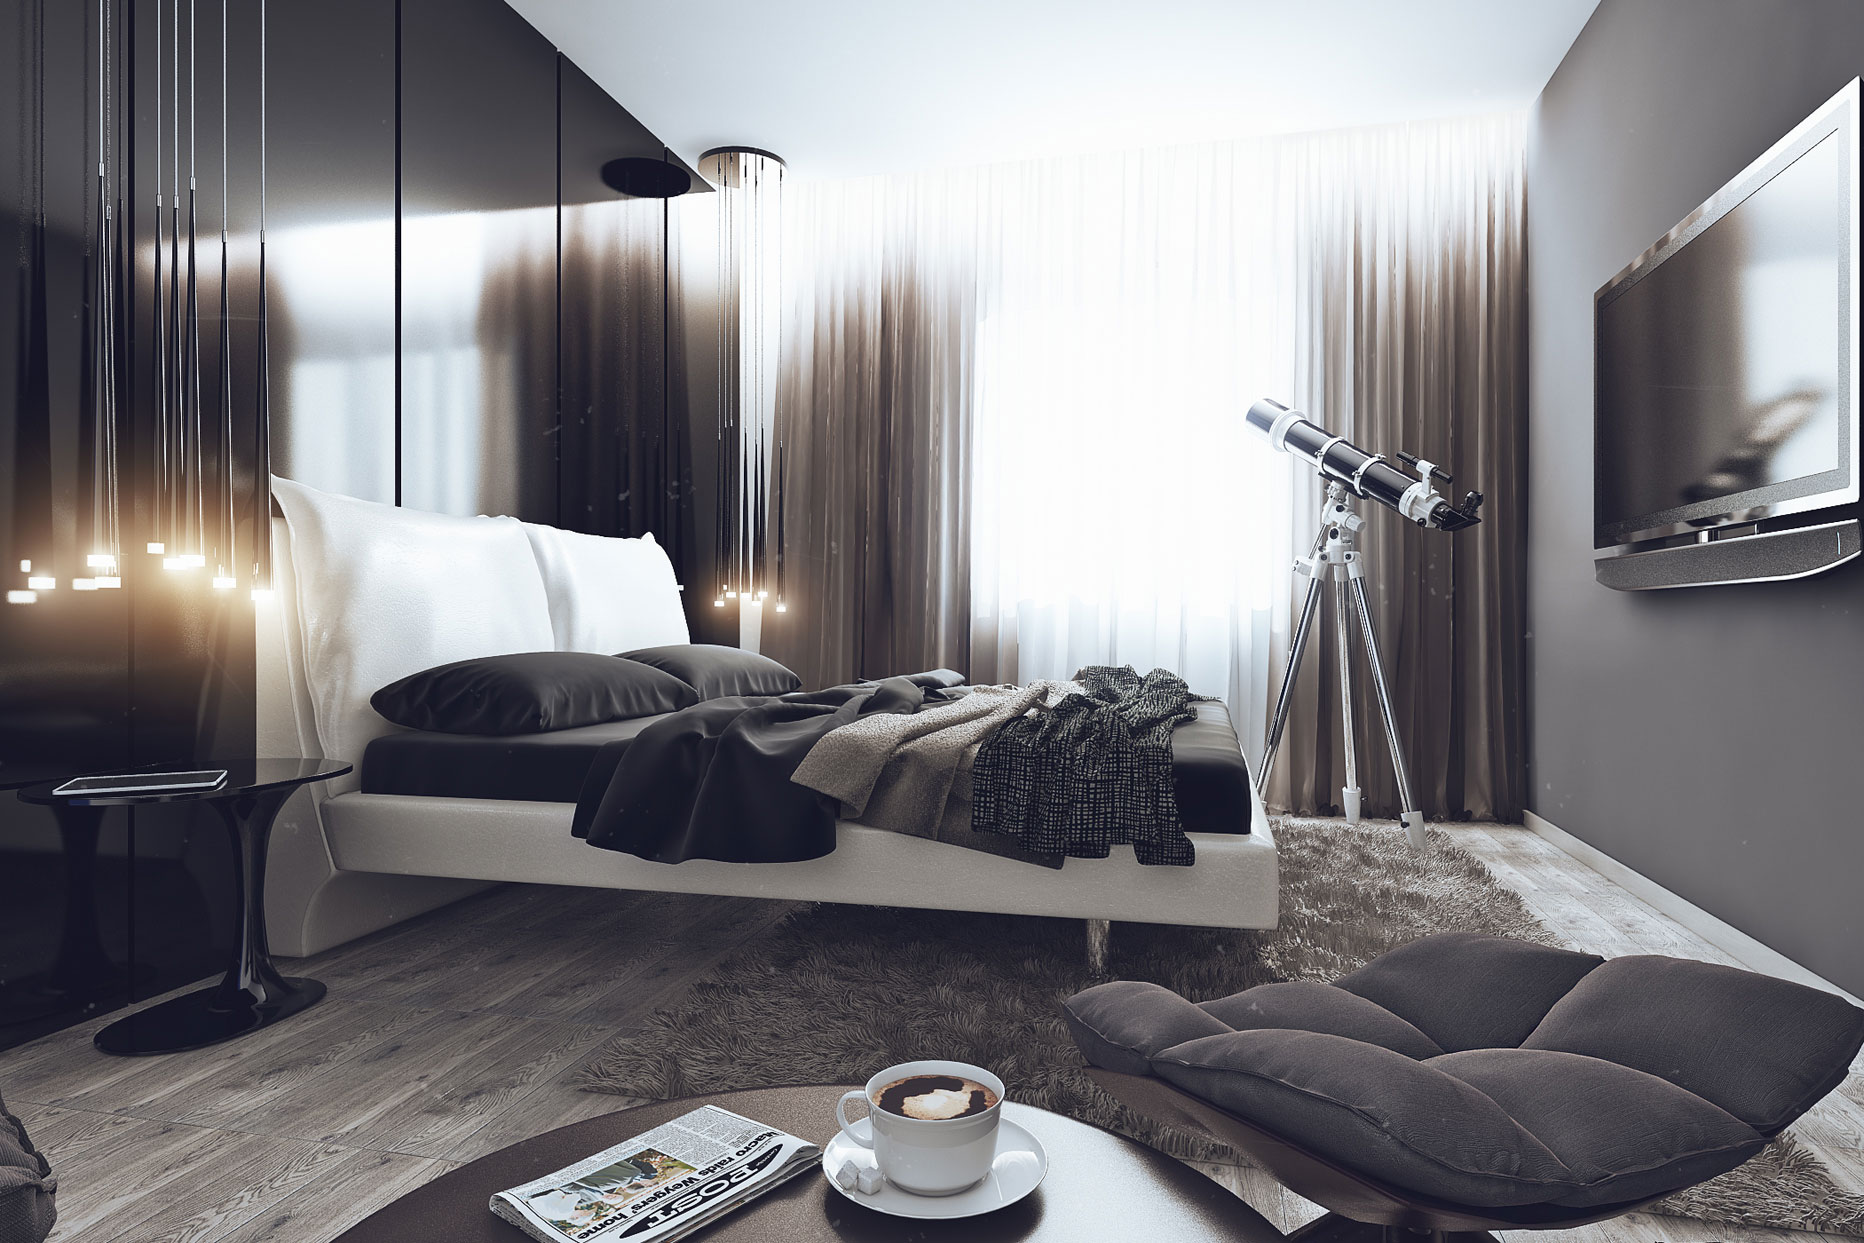 Super Lcd Moscow Bachelor Apartment By Angelina Alexeeva Download Free Architecture Designs Intelgarnamadebymaigaardcom